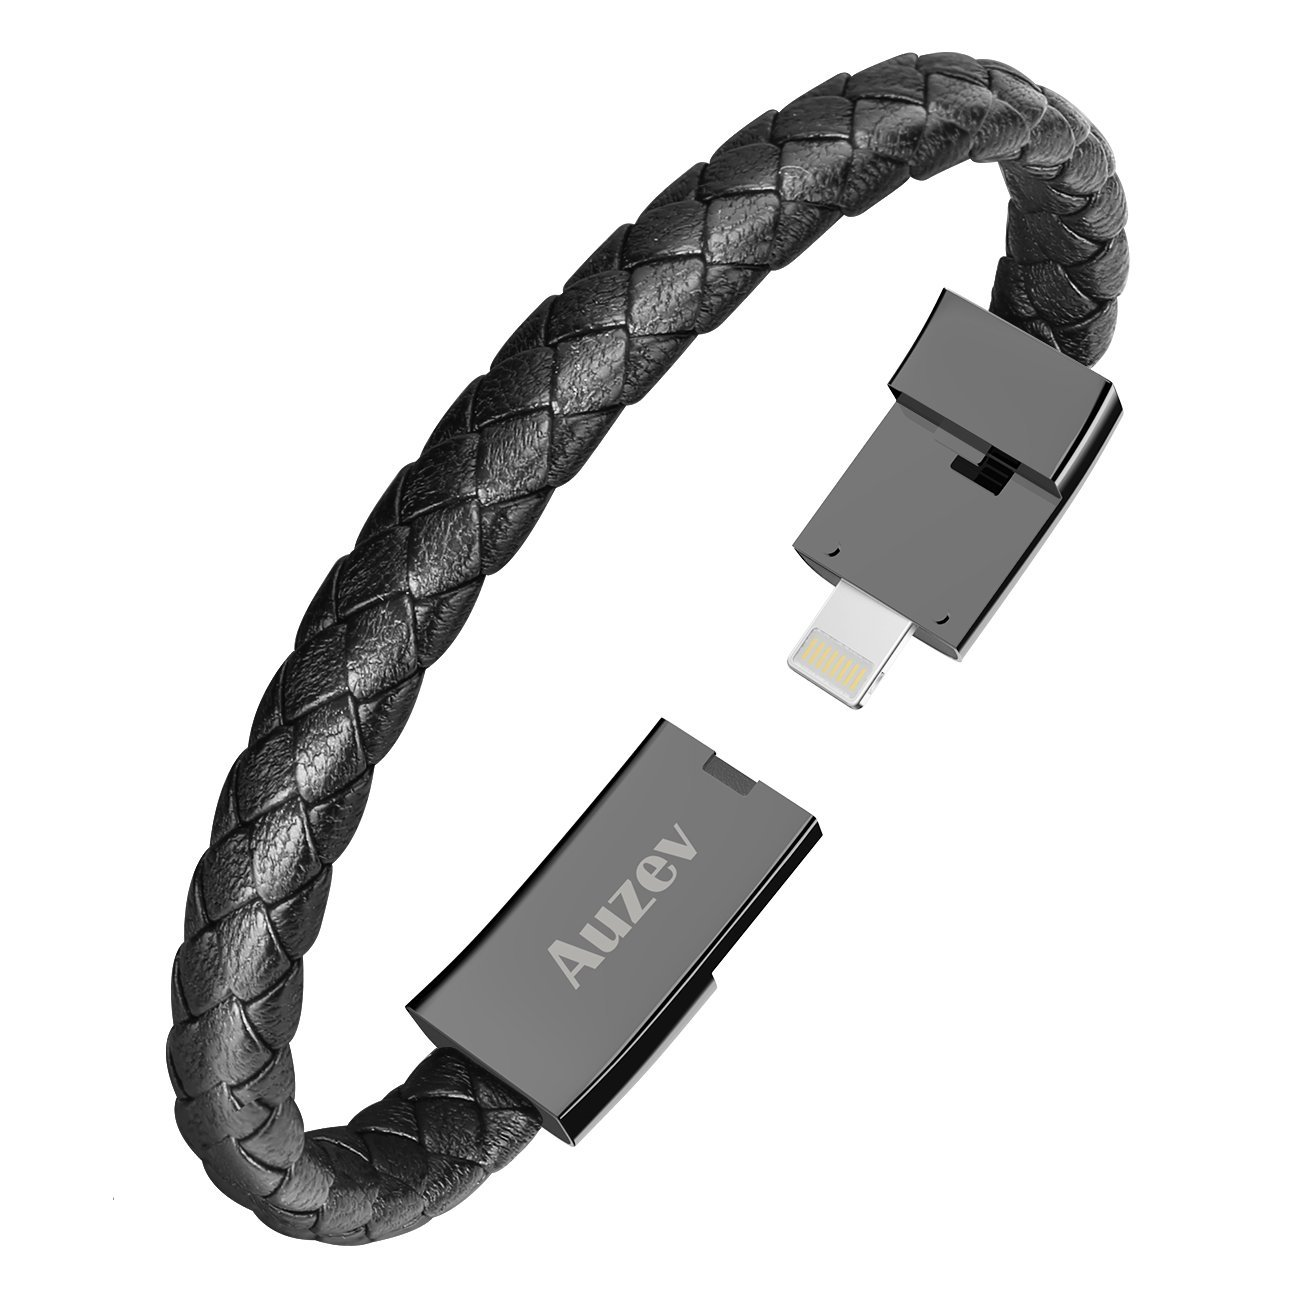 Auzev USB Charging Cable Bracelet Fashion Wrist Data Charger Cord Leather Cuff Band for iPhone iPad, iPod, Air Pods (Black, M(7.2'')